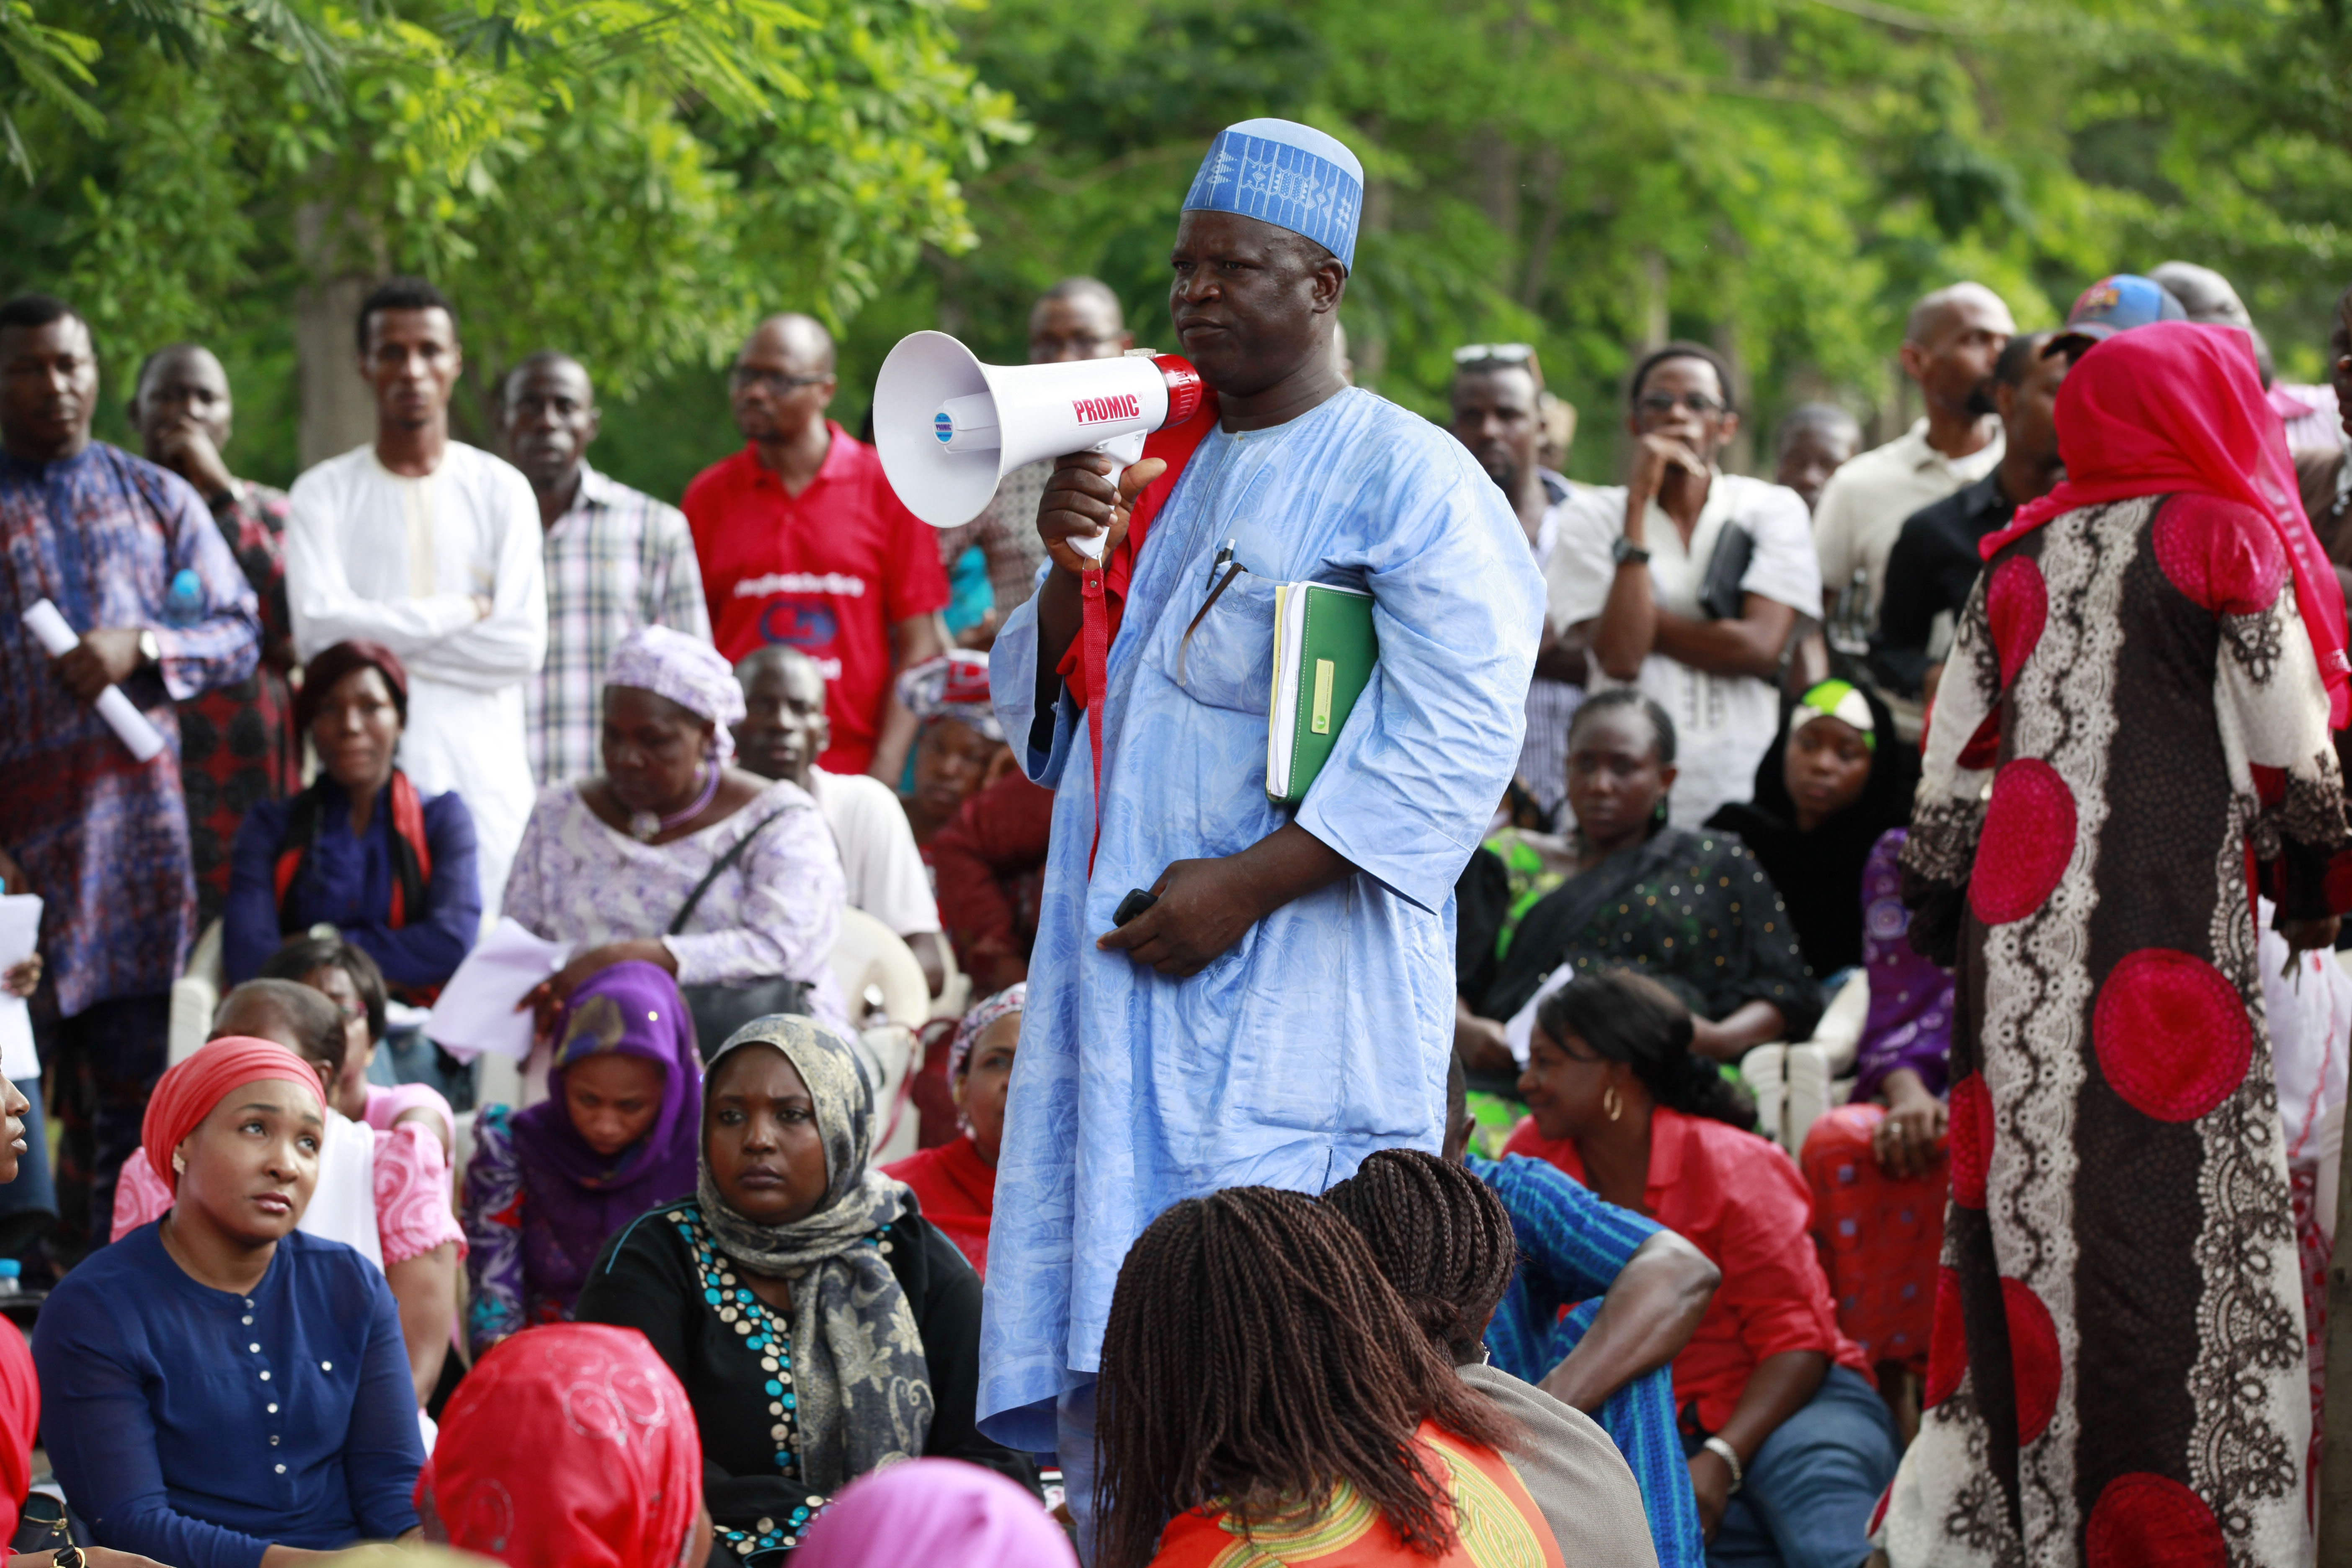 Hosea Abana, centre, the chairman of the  Chibok community in Abuja, Nigeria, pauses during a rally Saturday calling on the government to rescue the schoolgirls kidnapped from the Chibok Government secondary school. The president of Nigeria for weeks refused international help to search for more than 300 girls abducted by Islamic extremists.